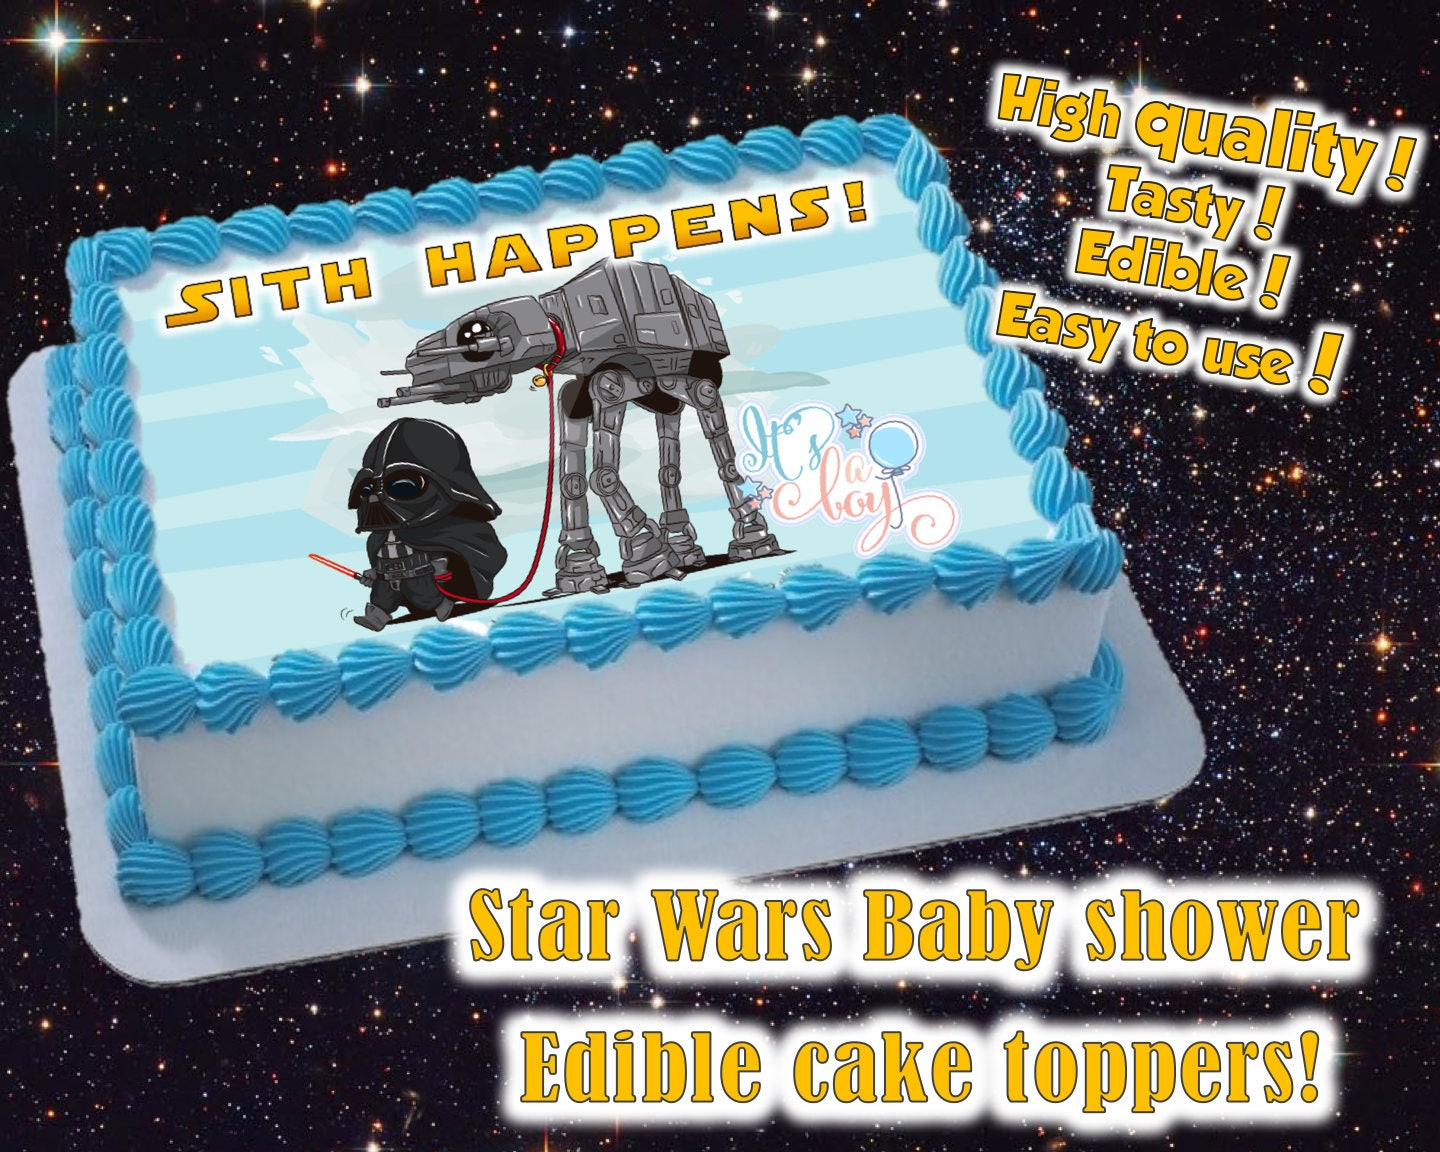 Star Wars themed Boy or Girl Baby shower cake toppers edible